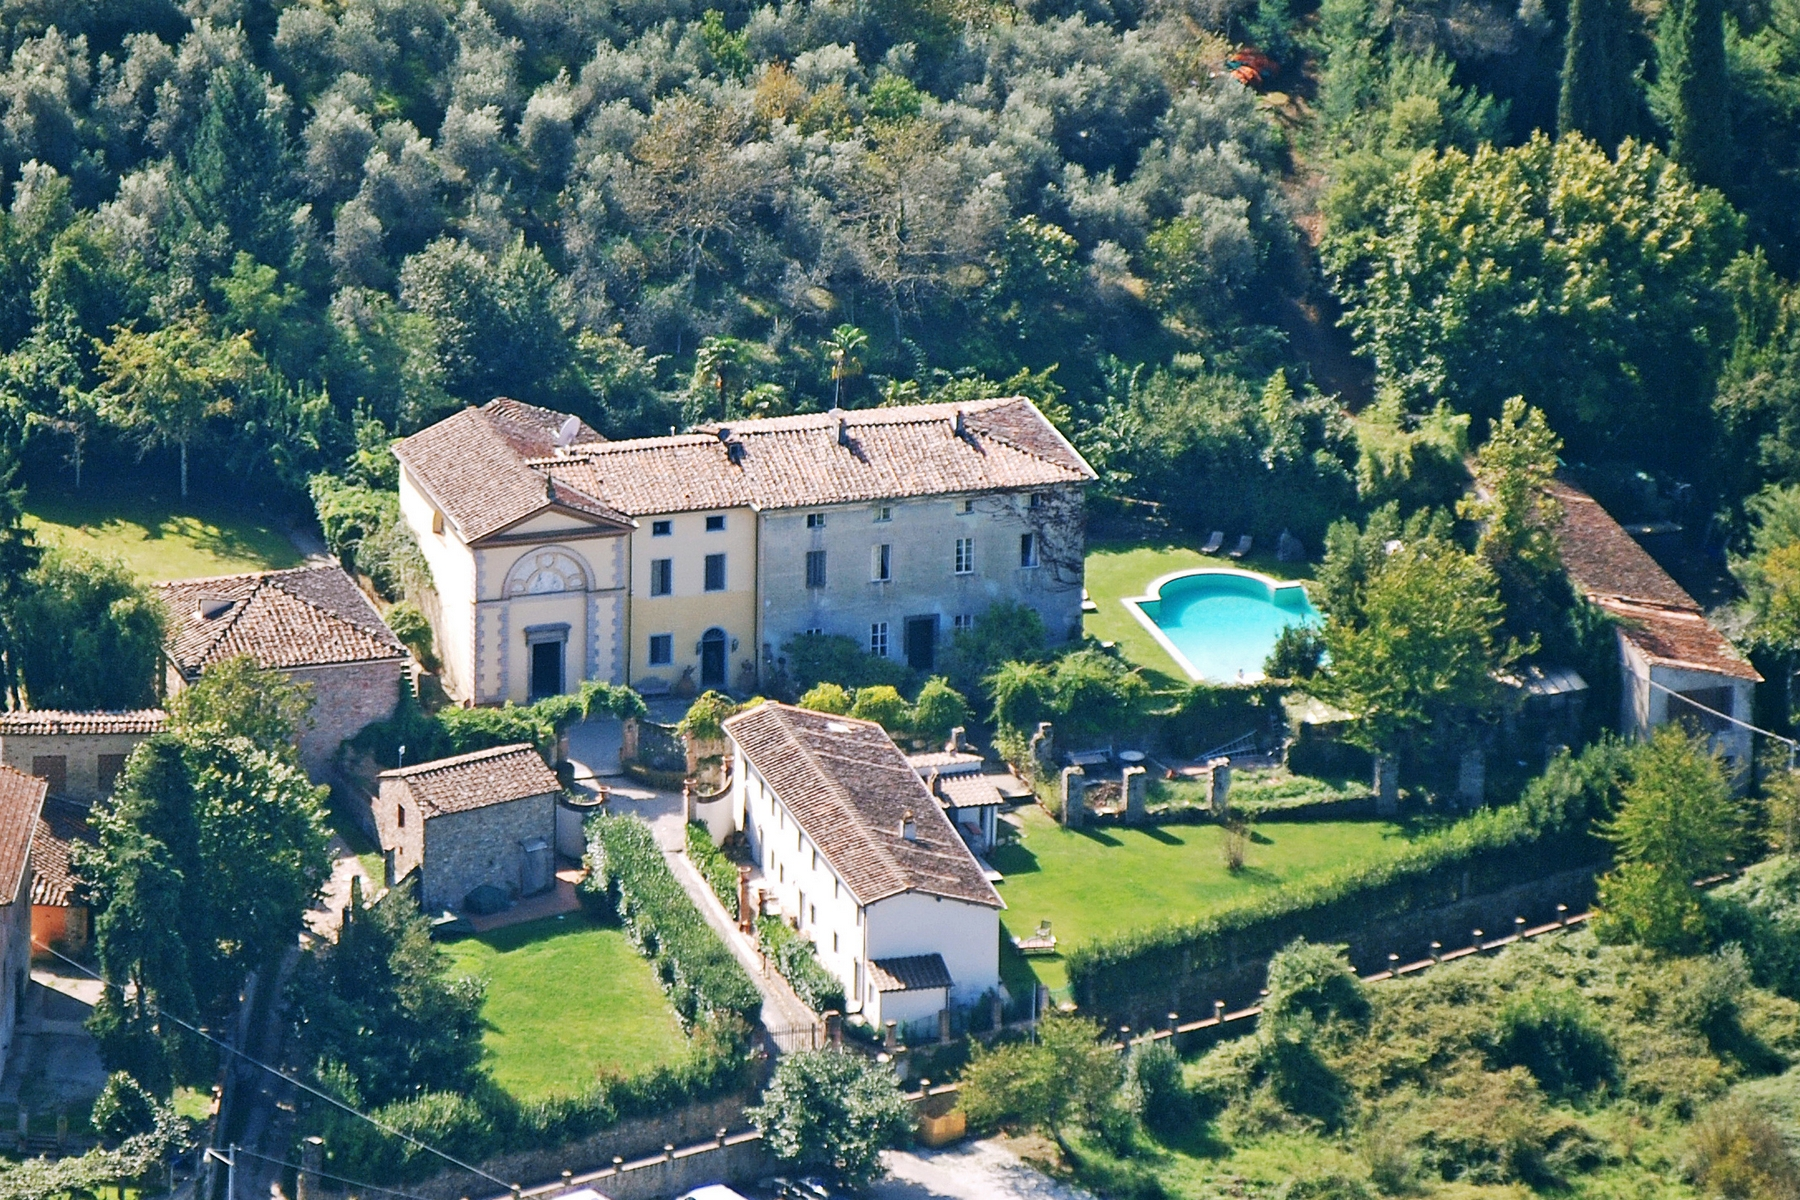 Single Family Home for Sale at Lovely 18th century villa with pool Via di Valle Lucca, 55060 Italy